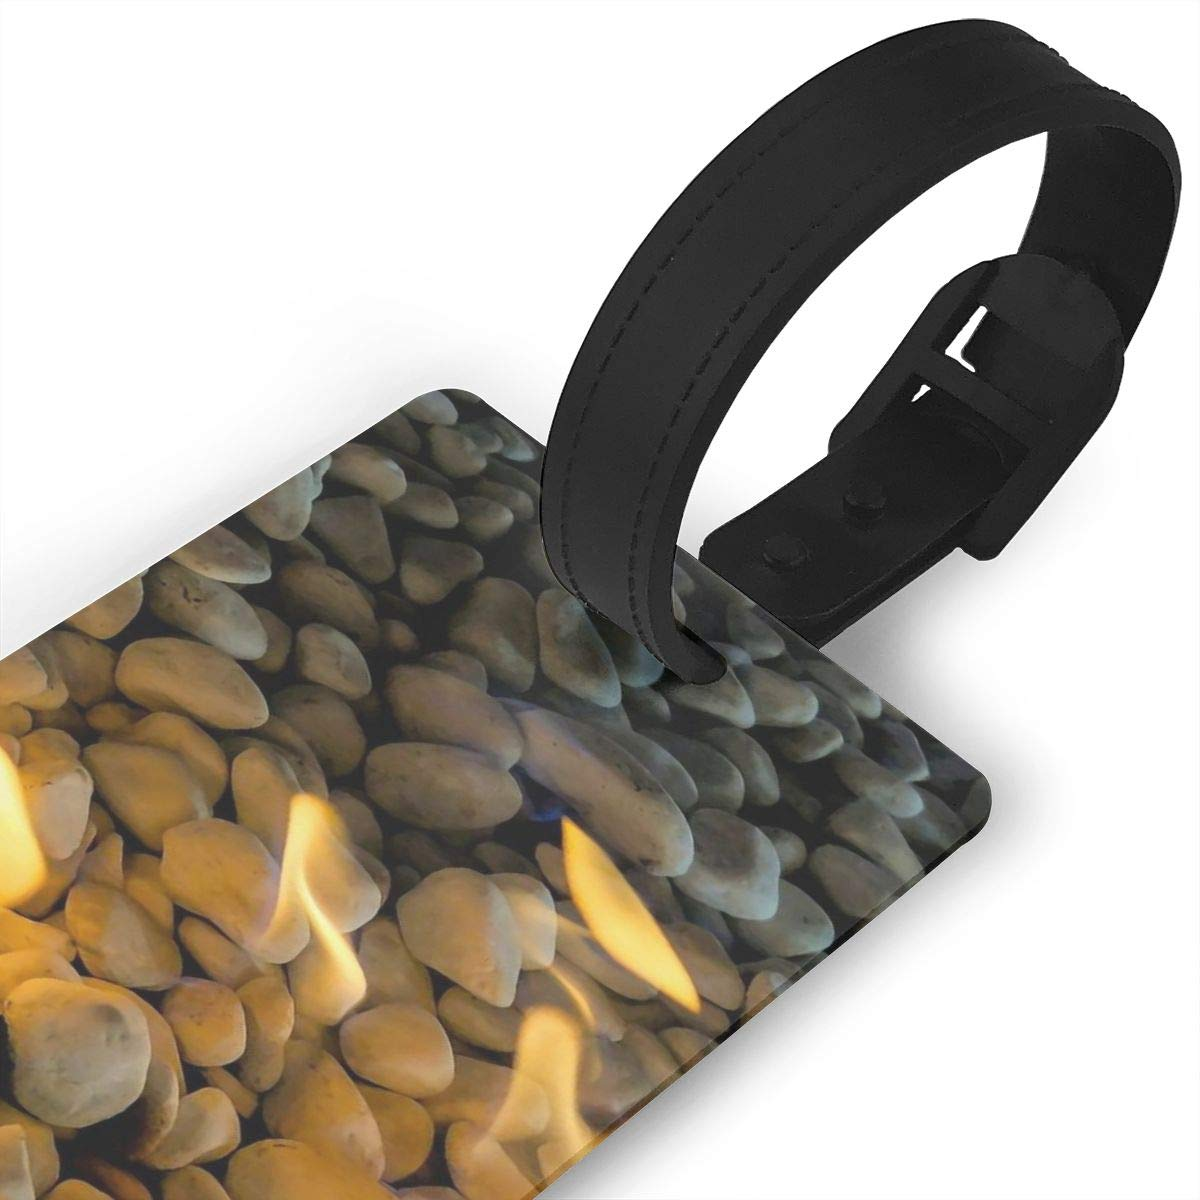 Cobblestone Travel Tags For Suitcase Bag Accessories 2 Pack Luggage Tags